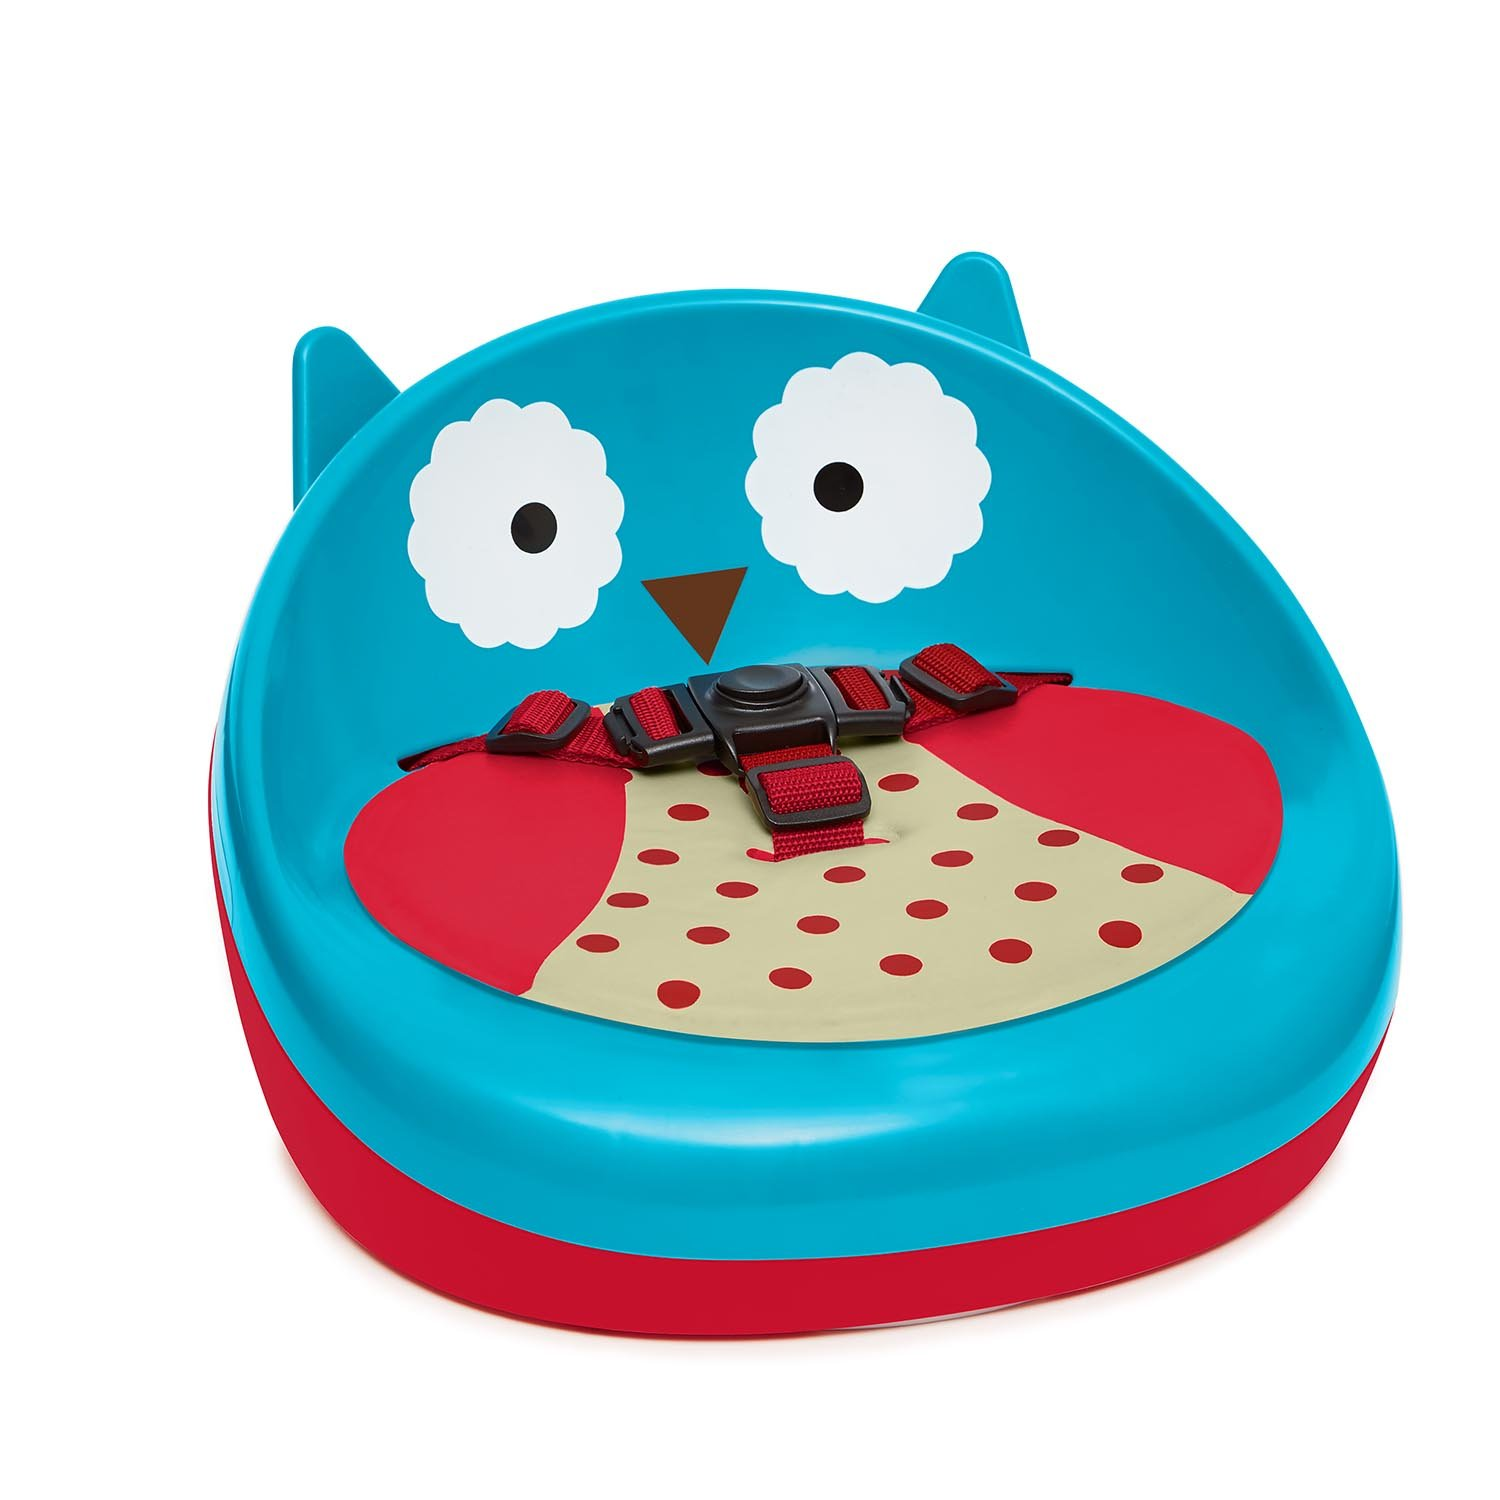 Skip Hop Zoo Booster Seat - Owl 304150-US